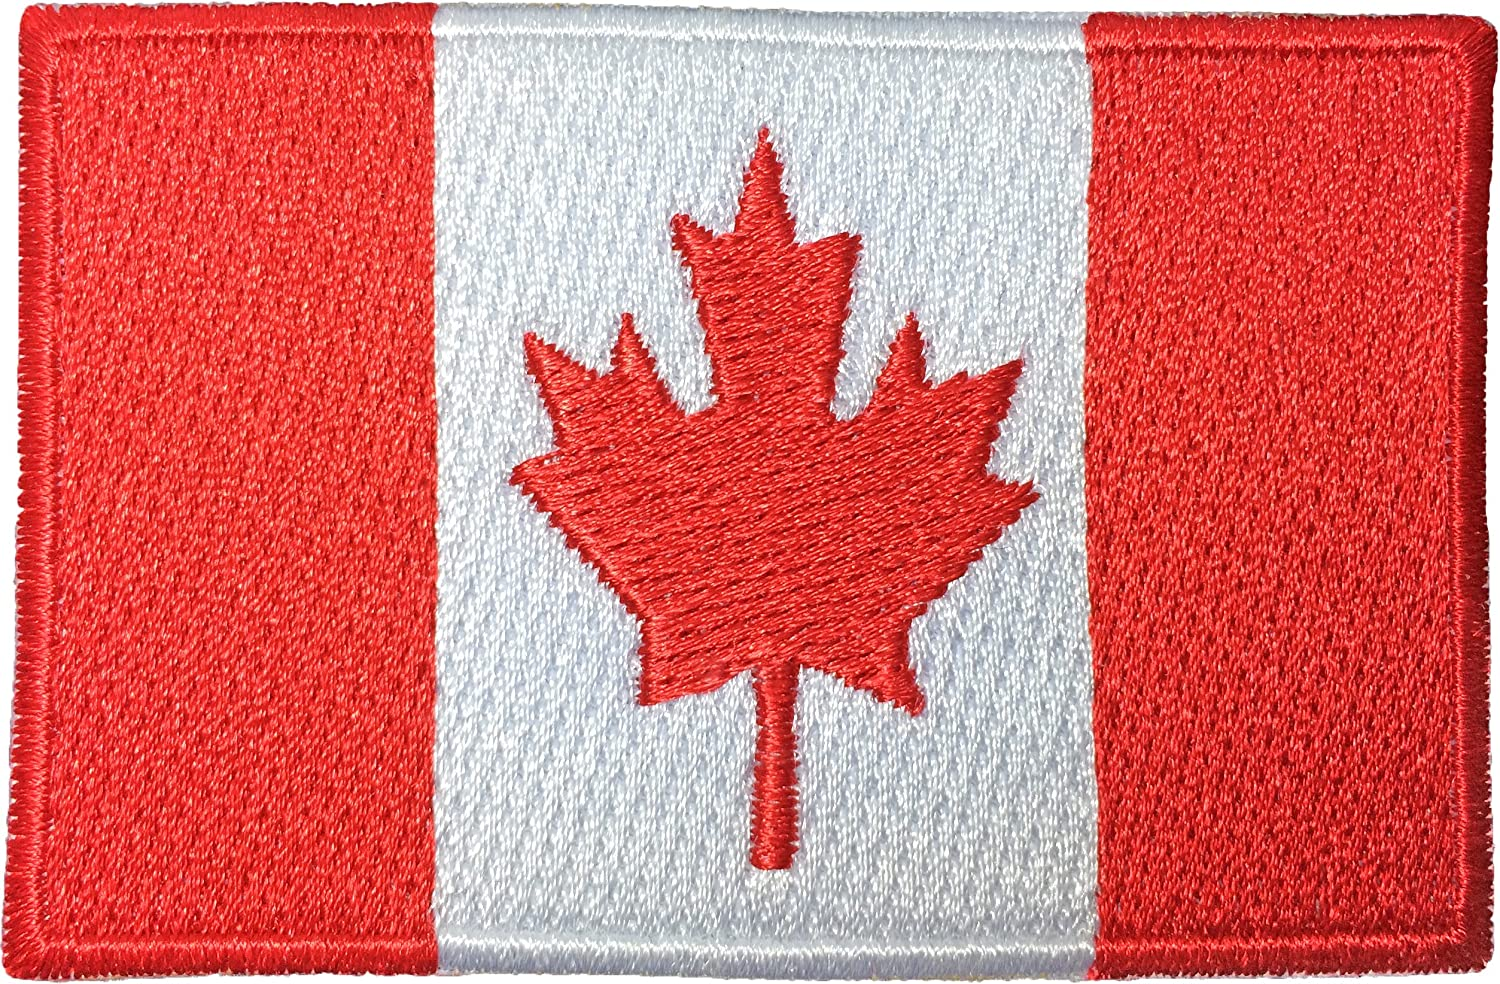 CANADIAN FLAG EMBROIDERED IRON-ON PATCH CANADA EMBLEM MAPLE LEAF applique RED